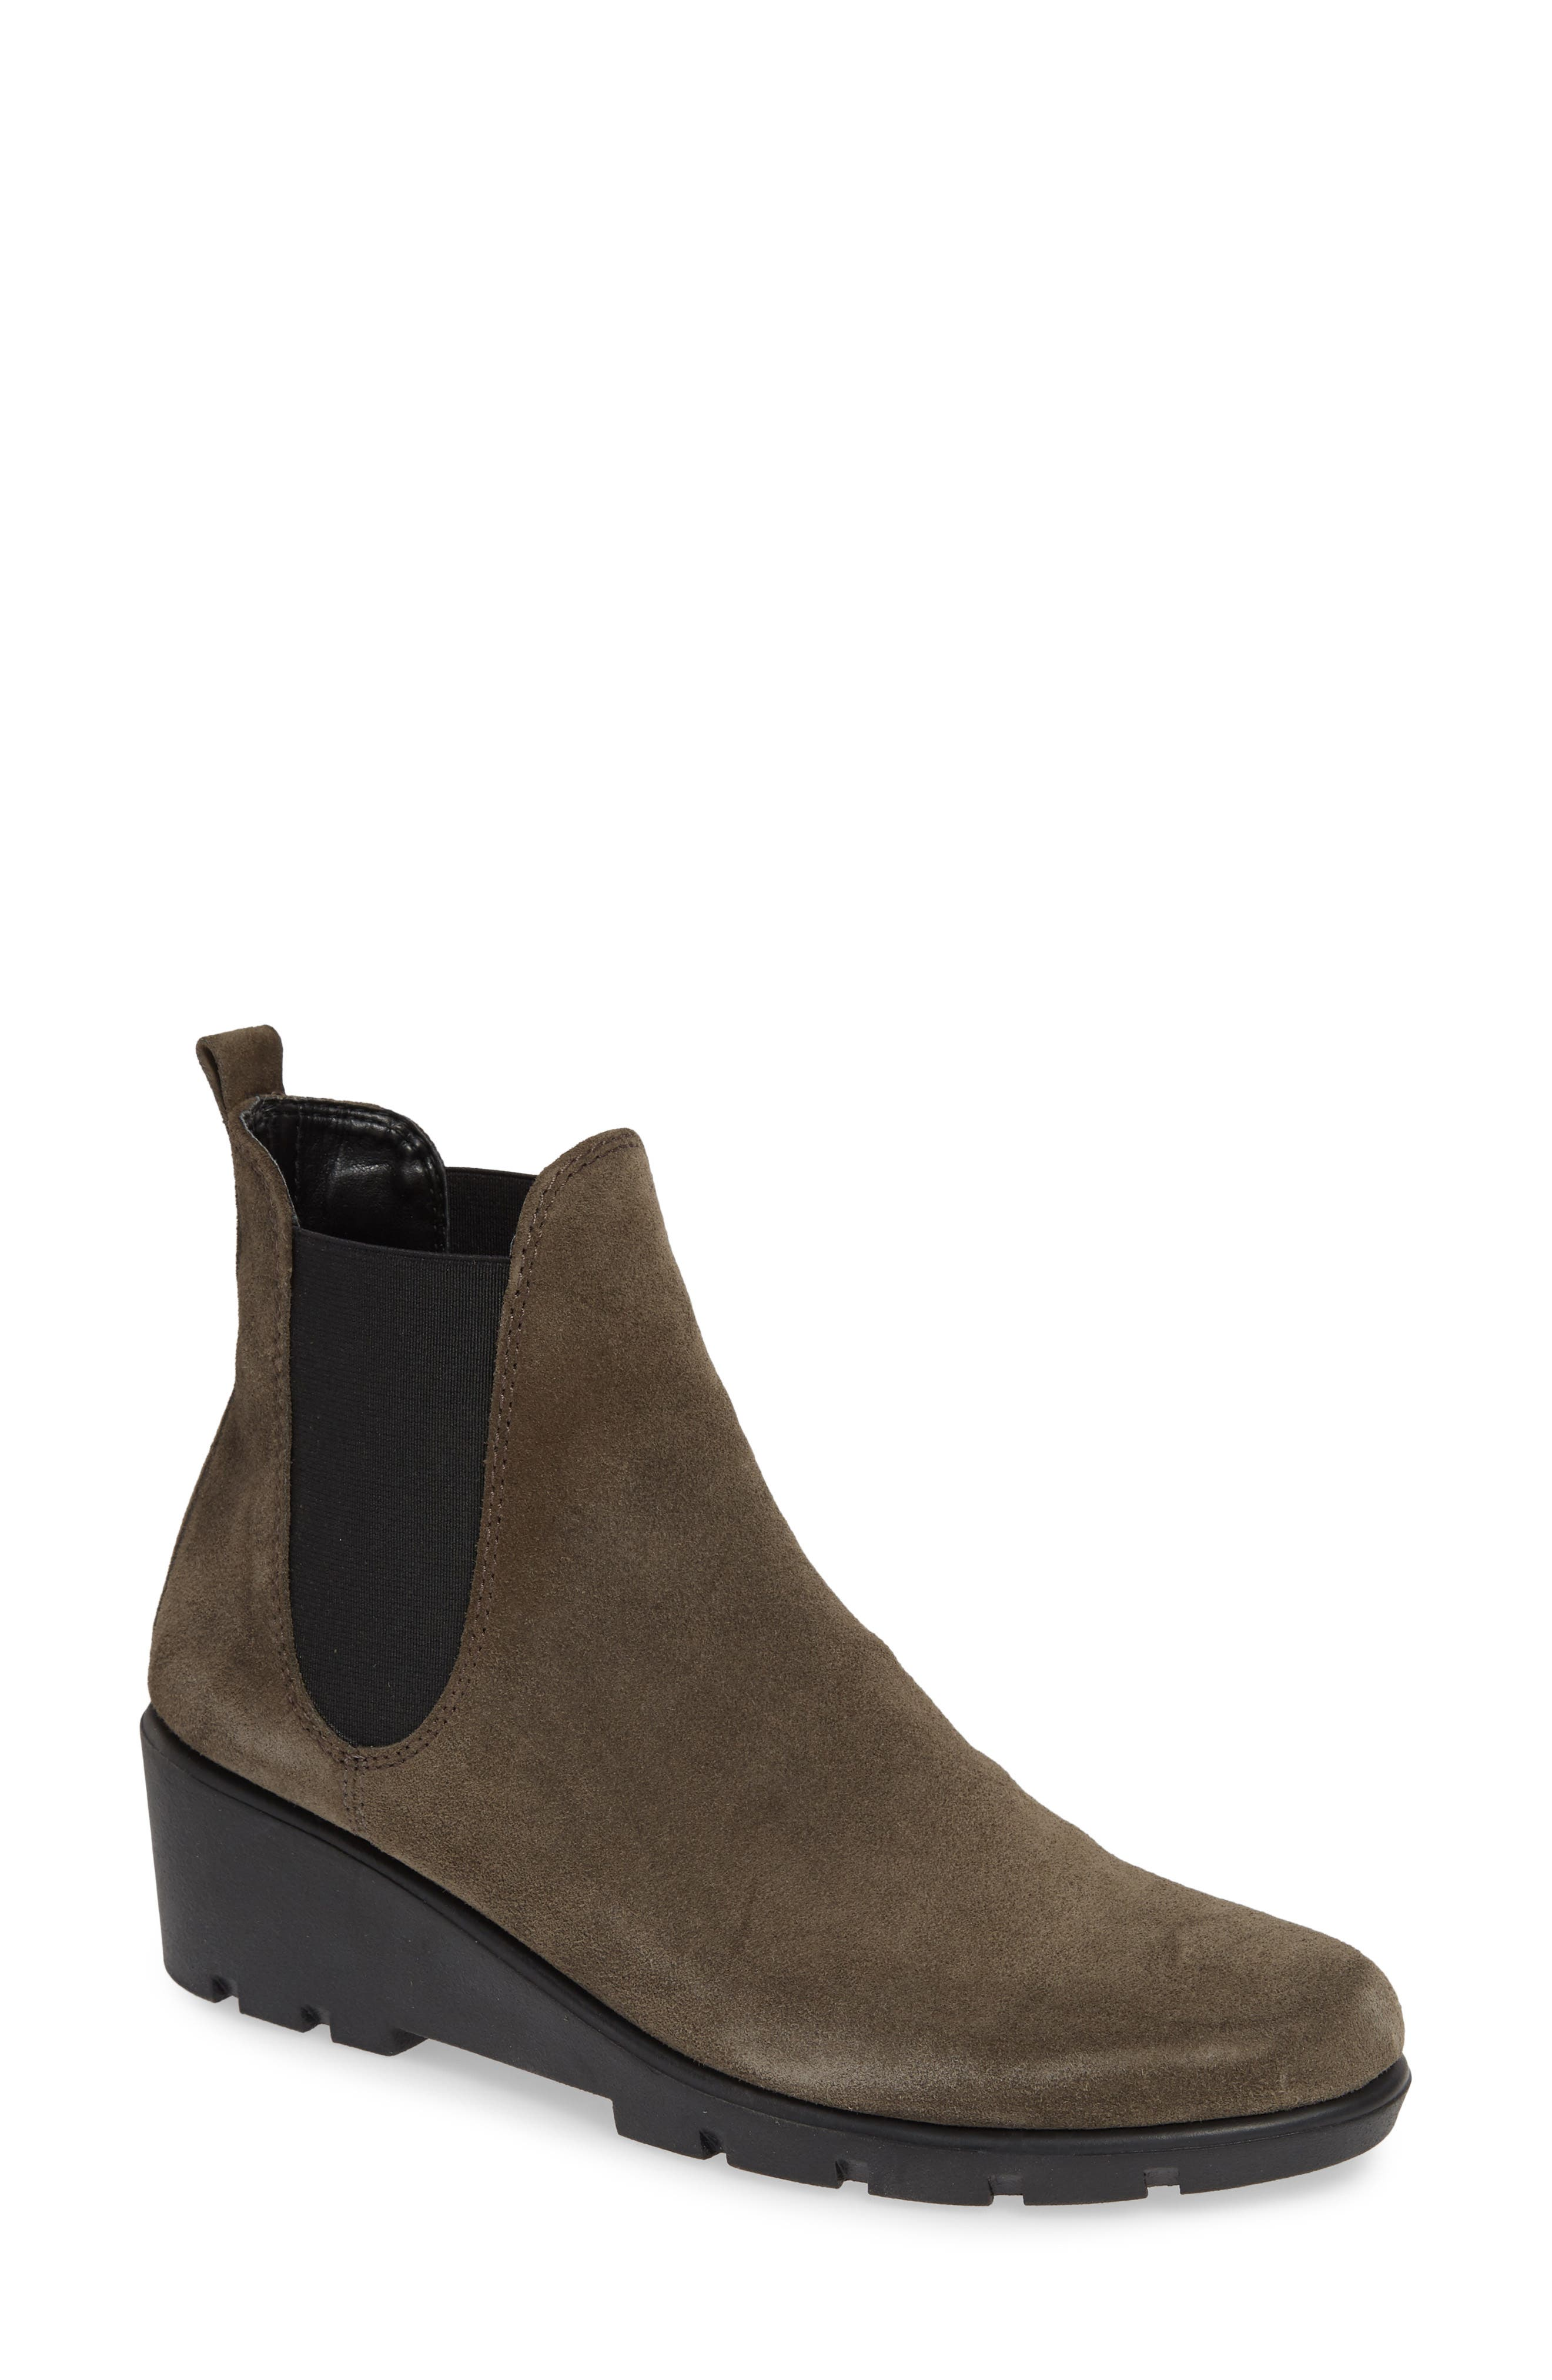 THE FLEXX, Slimmer Chelsea Wedge Boot, Main thumbnail 1, color, BROWN SUEDE